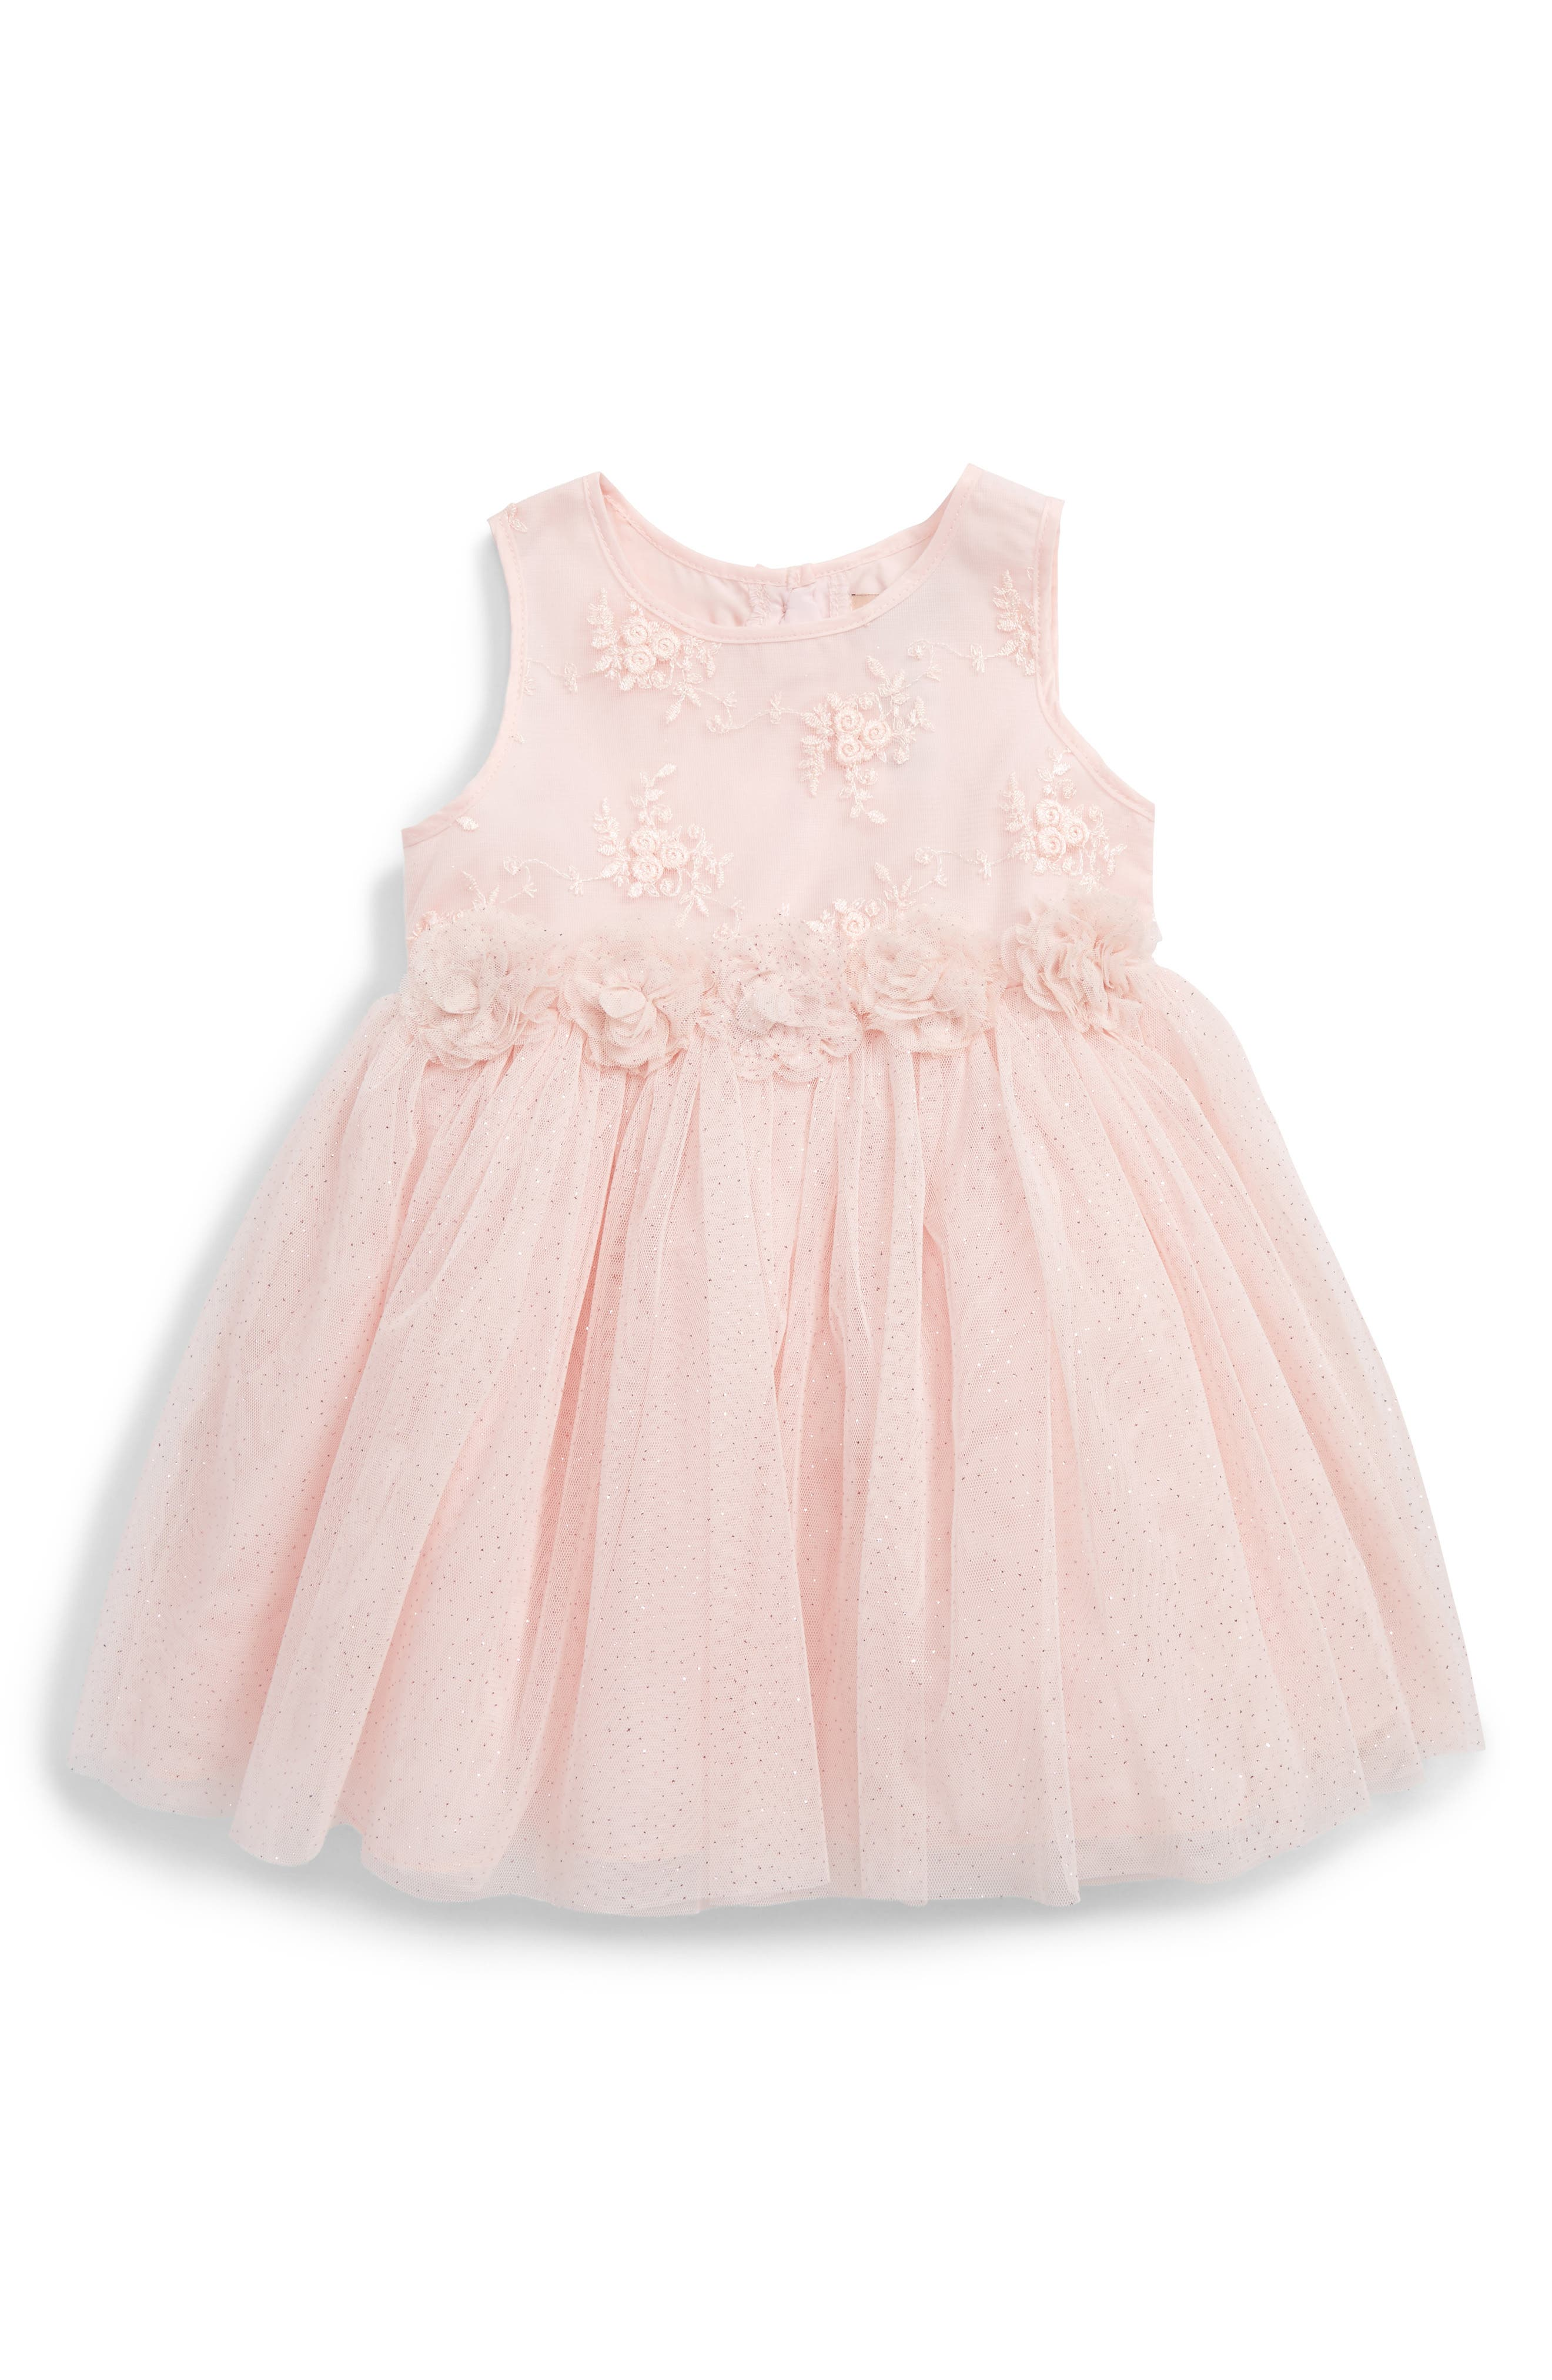 Embroidered Tulle Dress,                             Alternate thumbnail 2, color,                             674